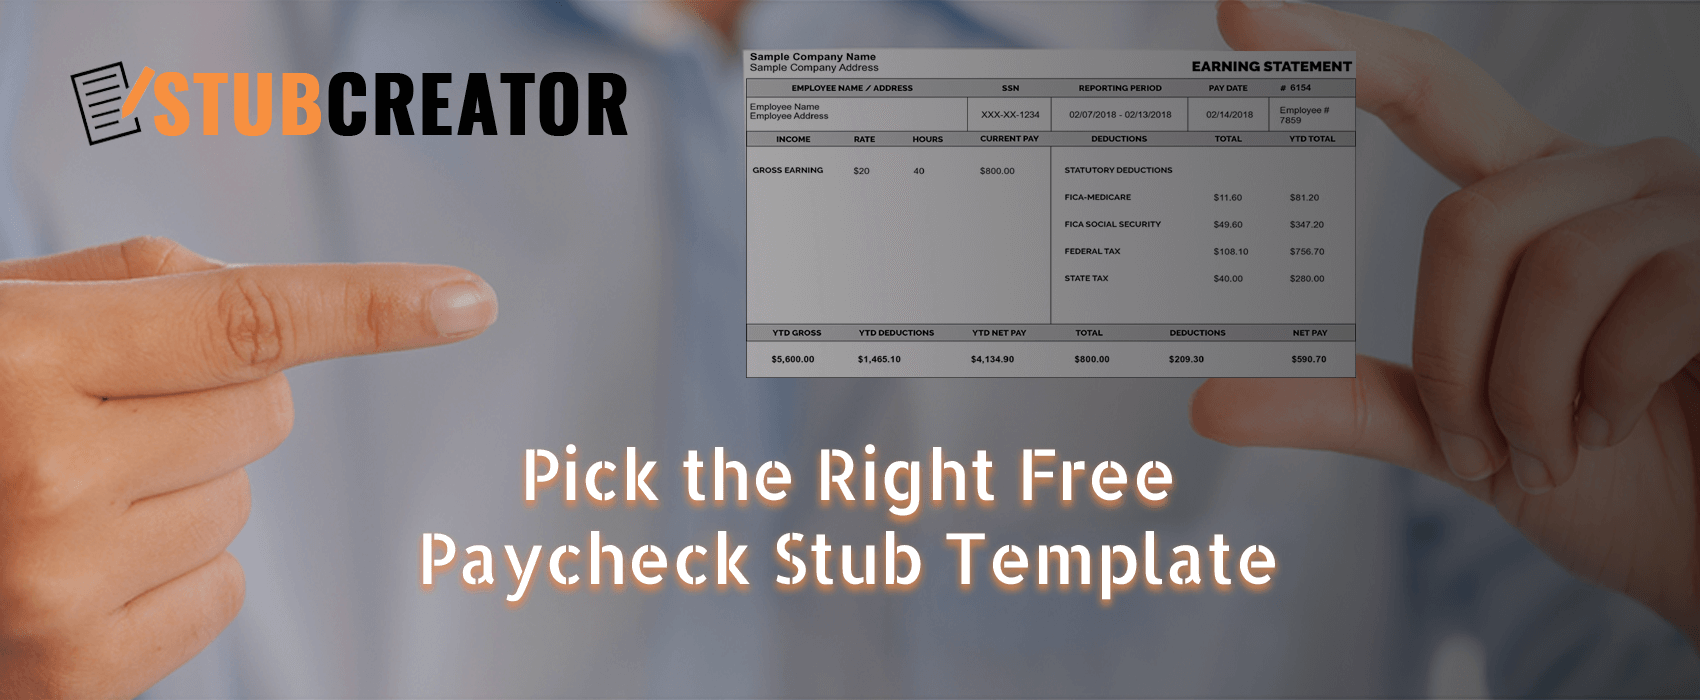 there is no shortage of free paycheck stub templates online you can easily find download and use layouts which can be directly used to create a pay stub - Free Paycheck Stub Template